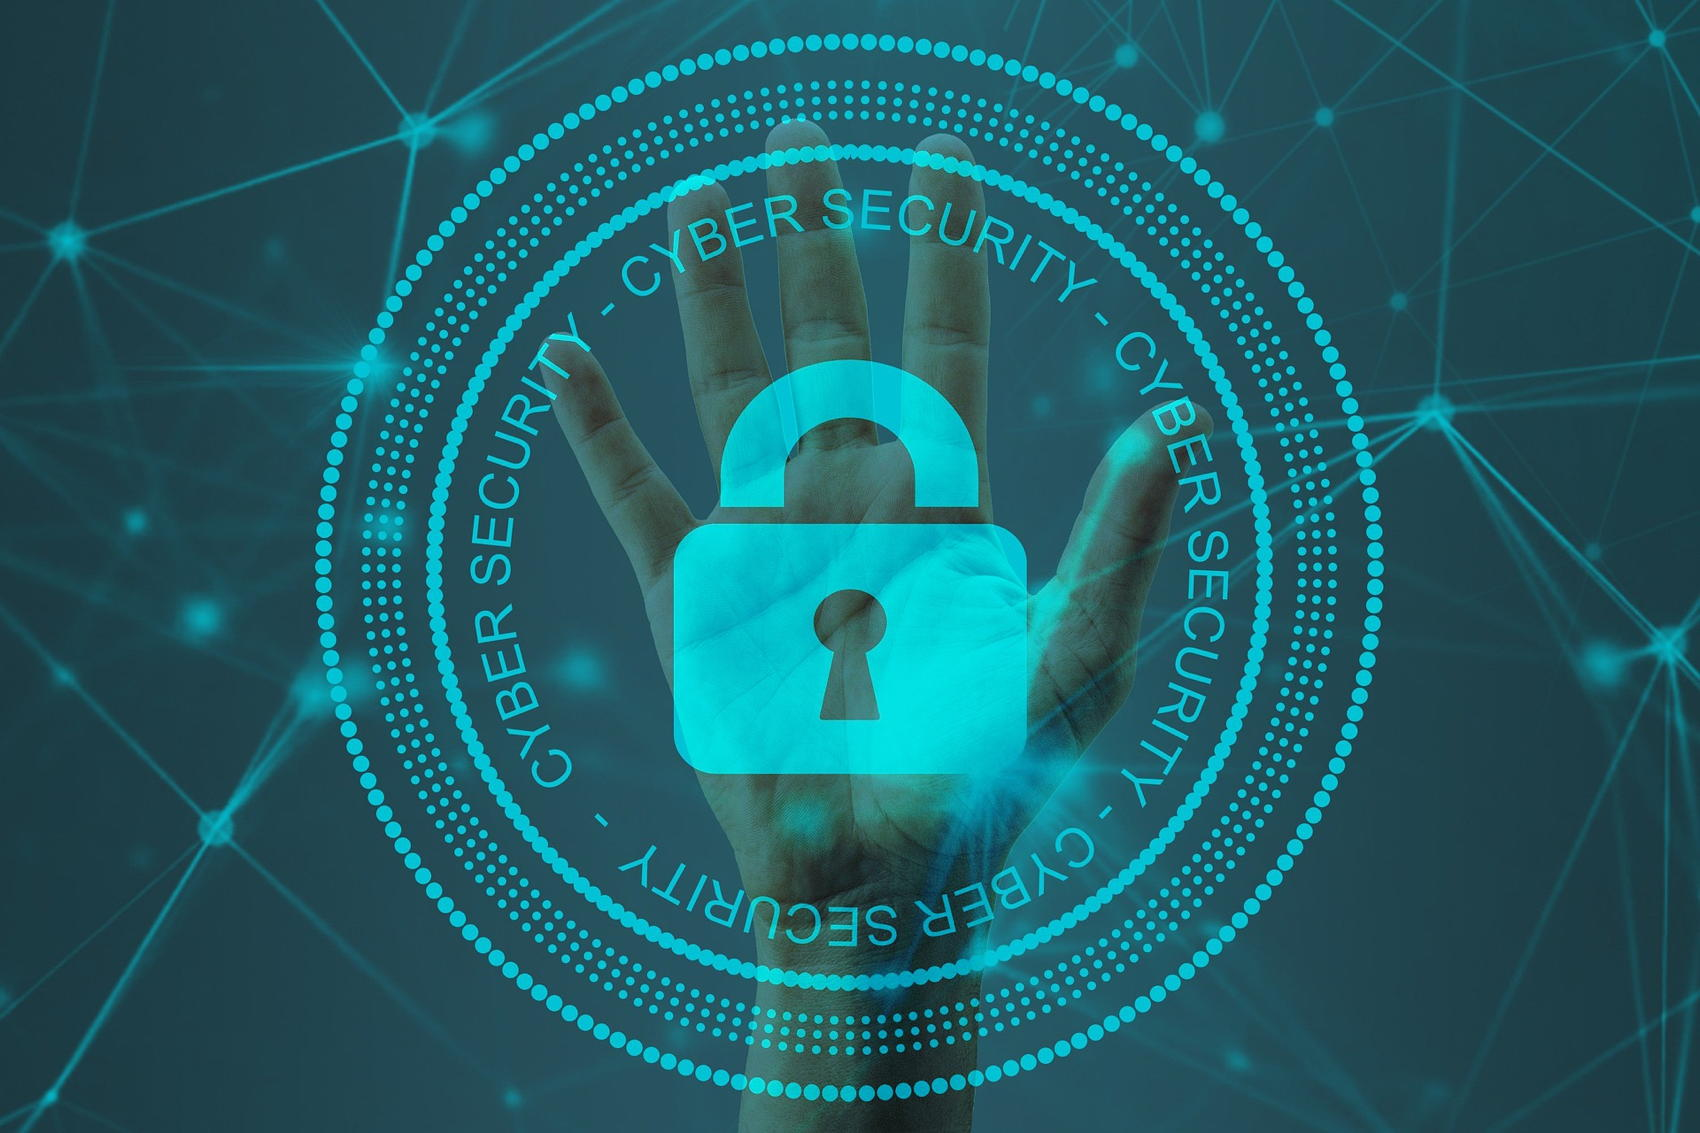 Cybersecurity - Image by Pete Linforth